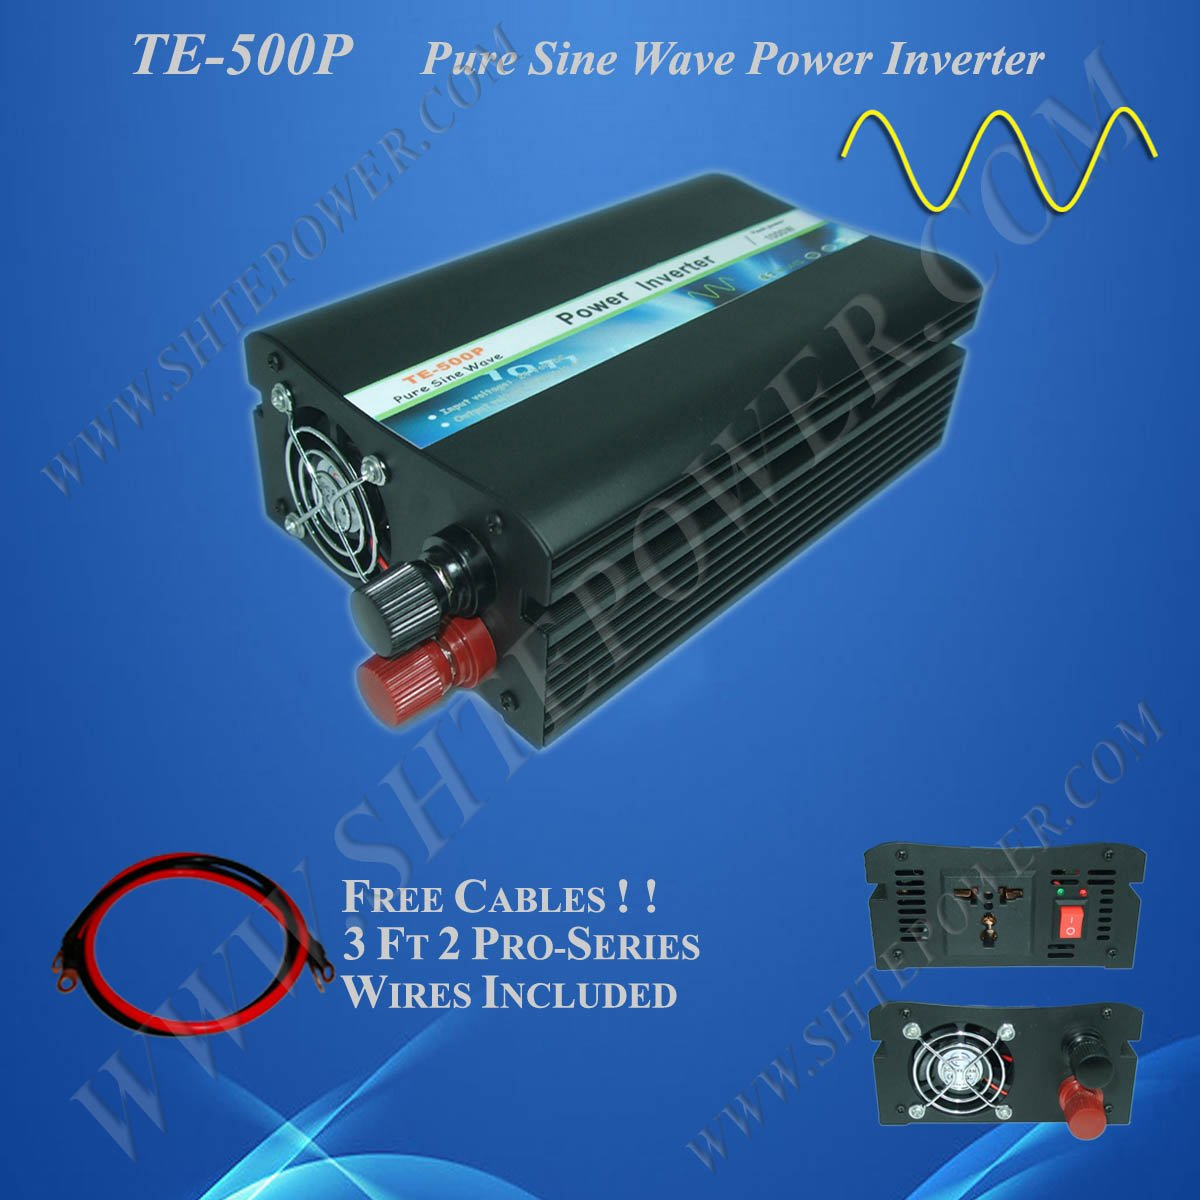 500w Solar Invertor, Pure Sine Wave Inverter, DC 12v to 220v Power Inverter картридж аквафор b520 14 1шт